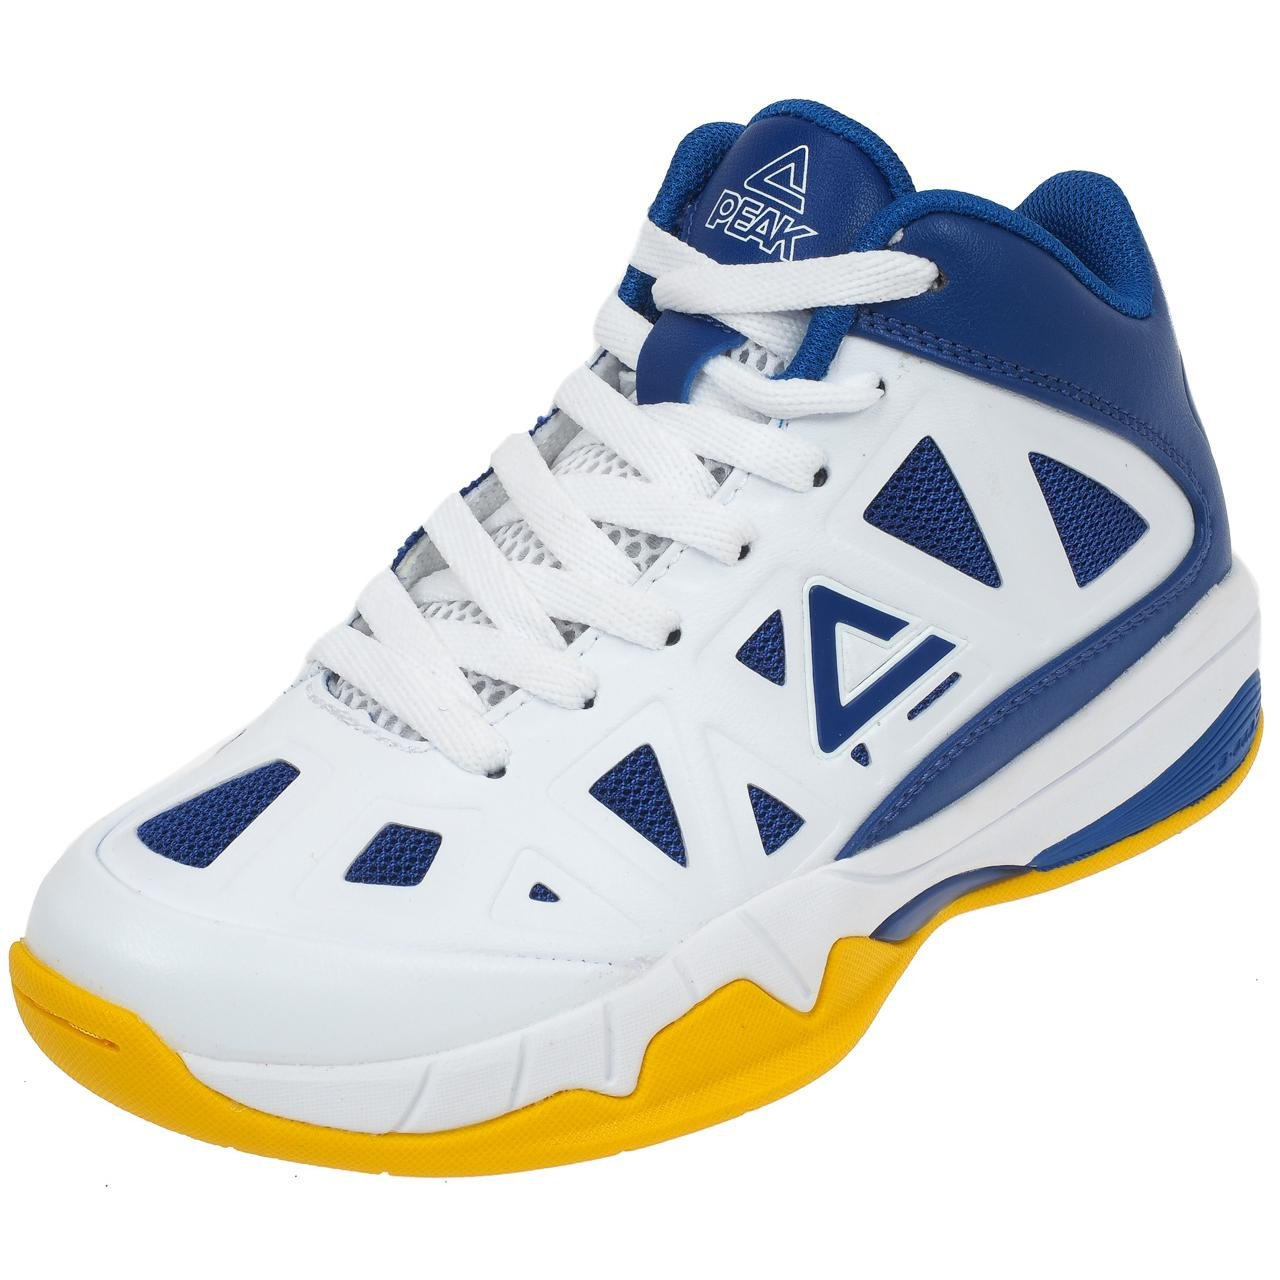 Zapatos Peak Victor Junior azul/blanco